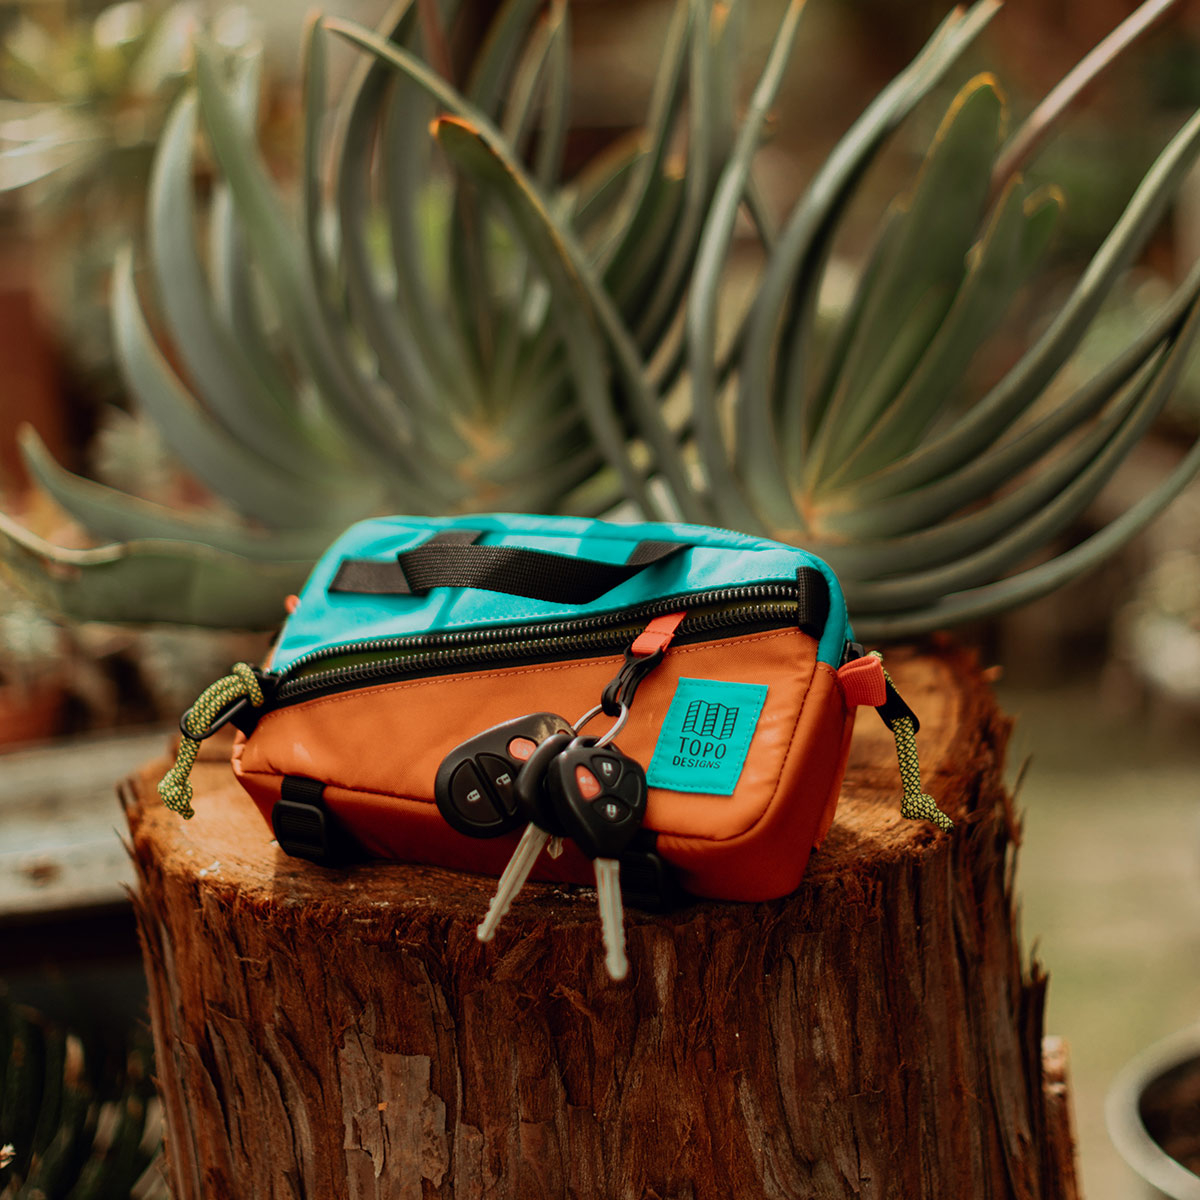 Topo Designs Mini Quick Pack Turquoise/Clay, a well-built, secure bag for travel